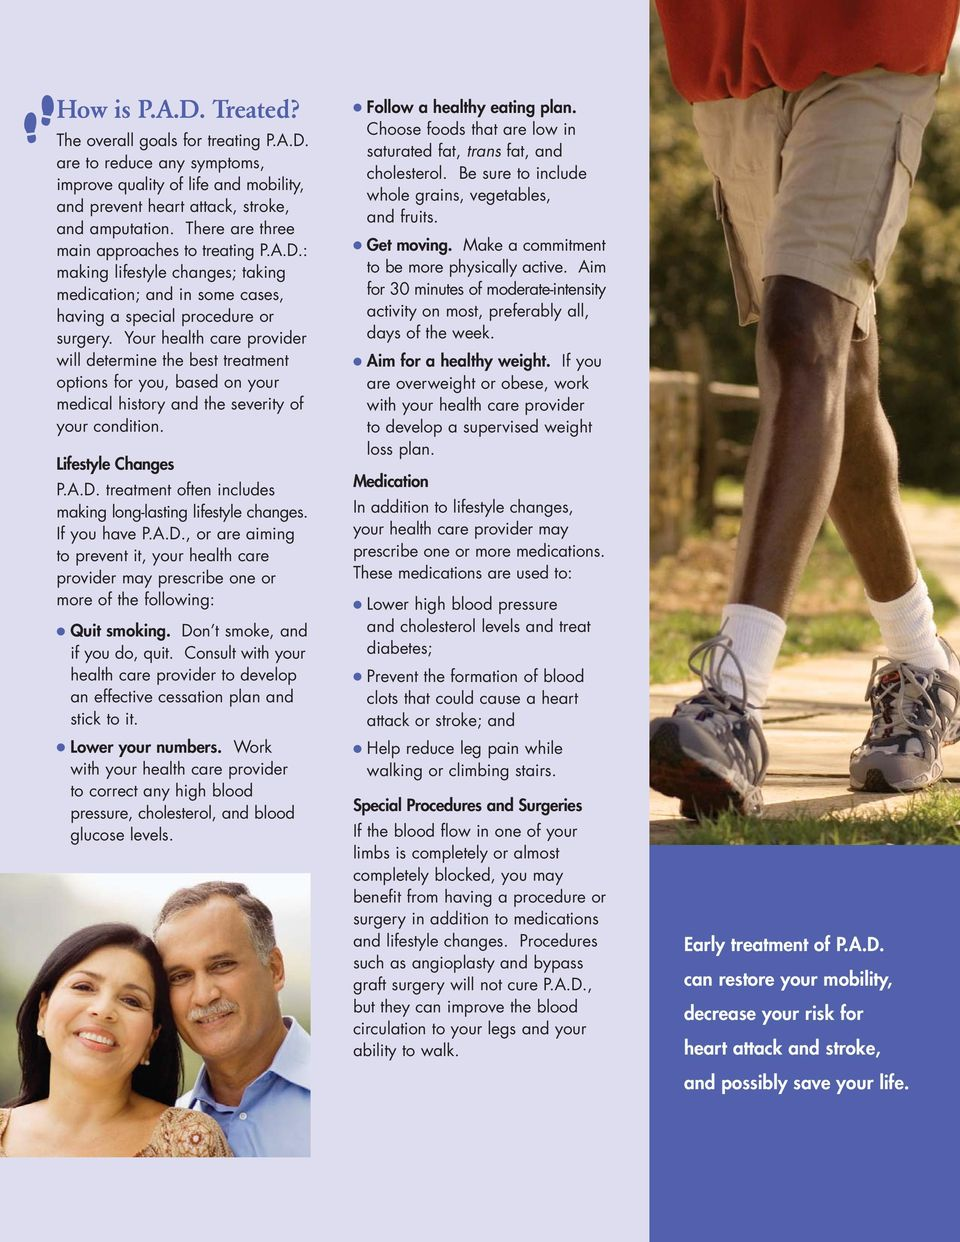 Your health care provider will determine the best treatment options for you, based on your medical history and the severity of your condition. Lifestyle Changes P.A.D.